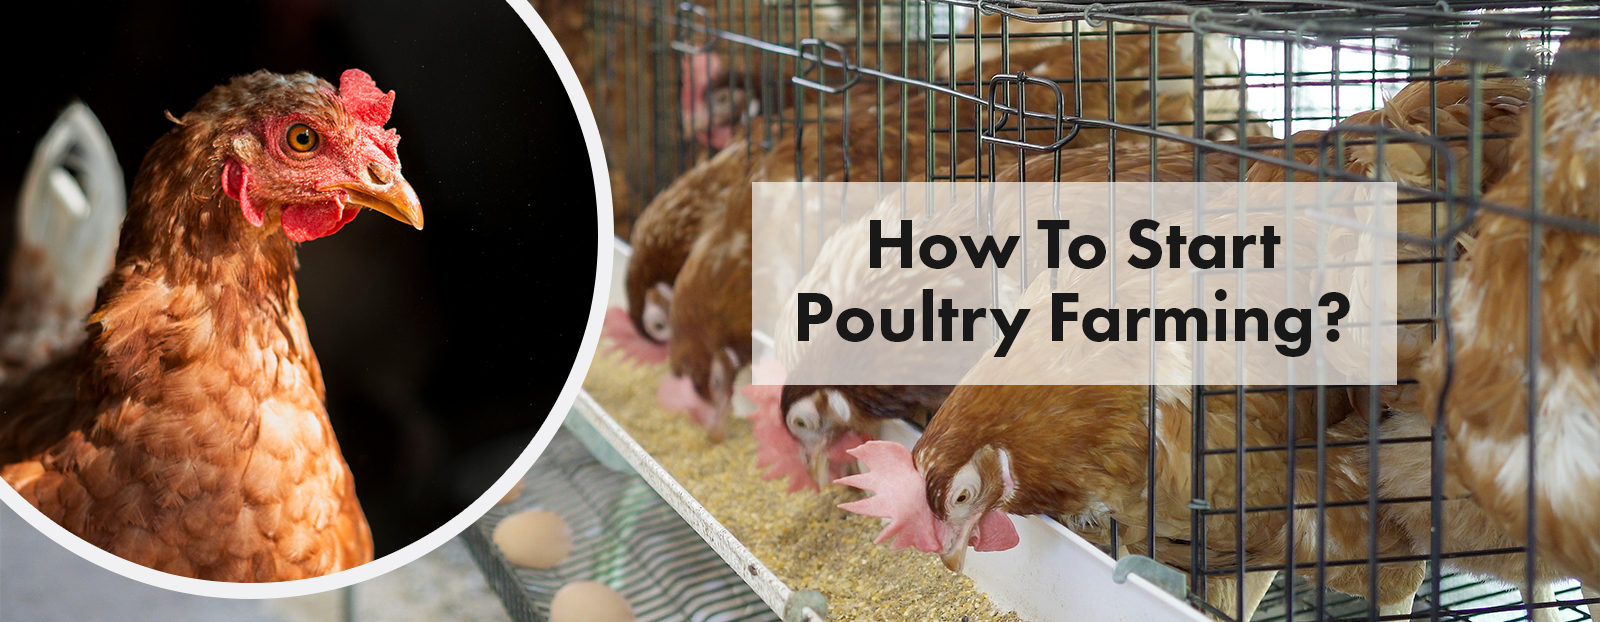 How To Start Poultry Farming?